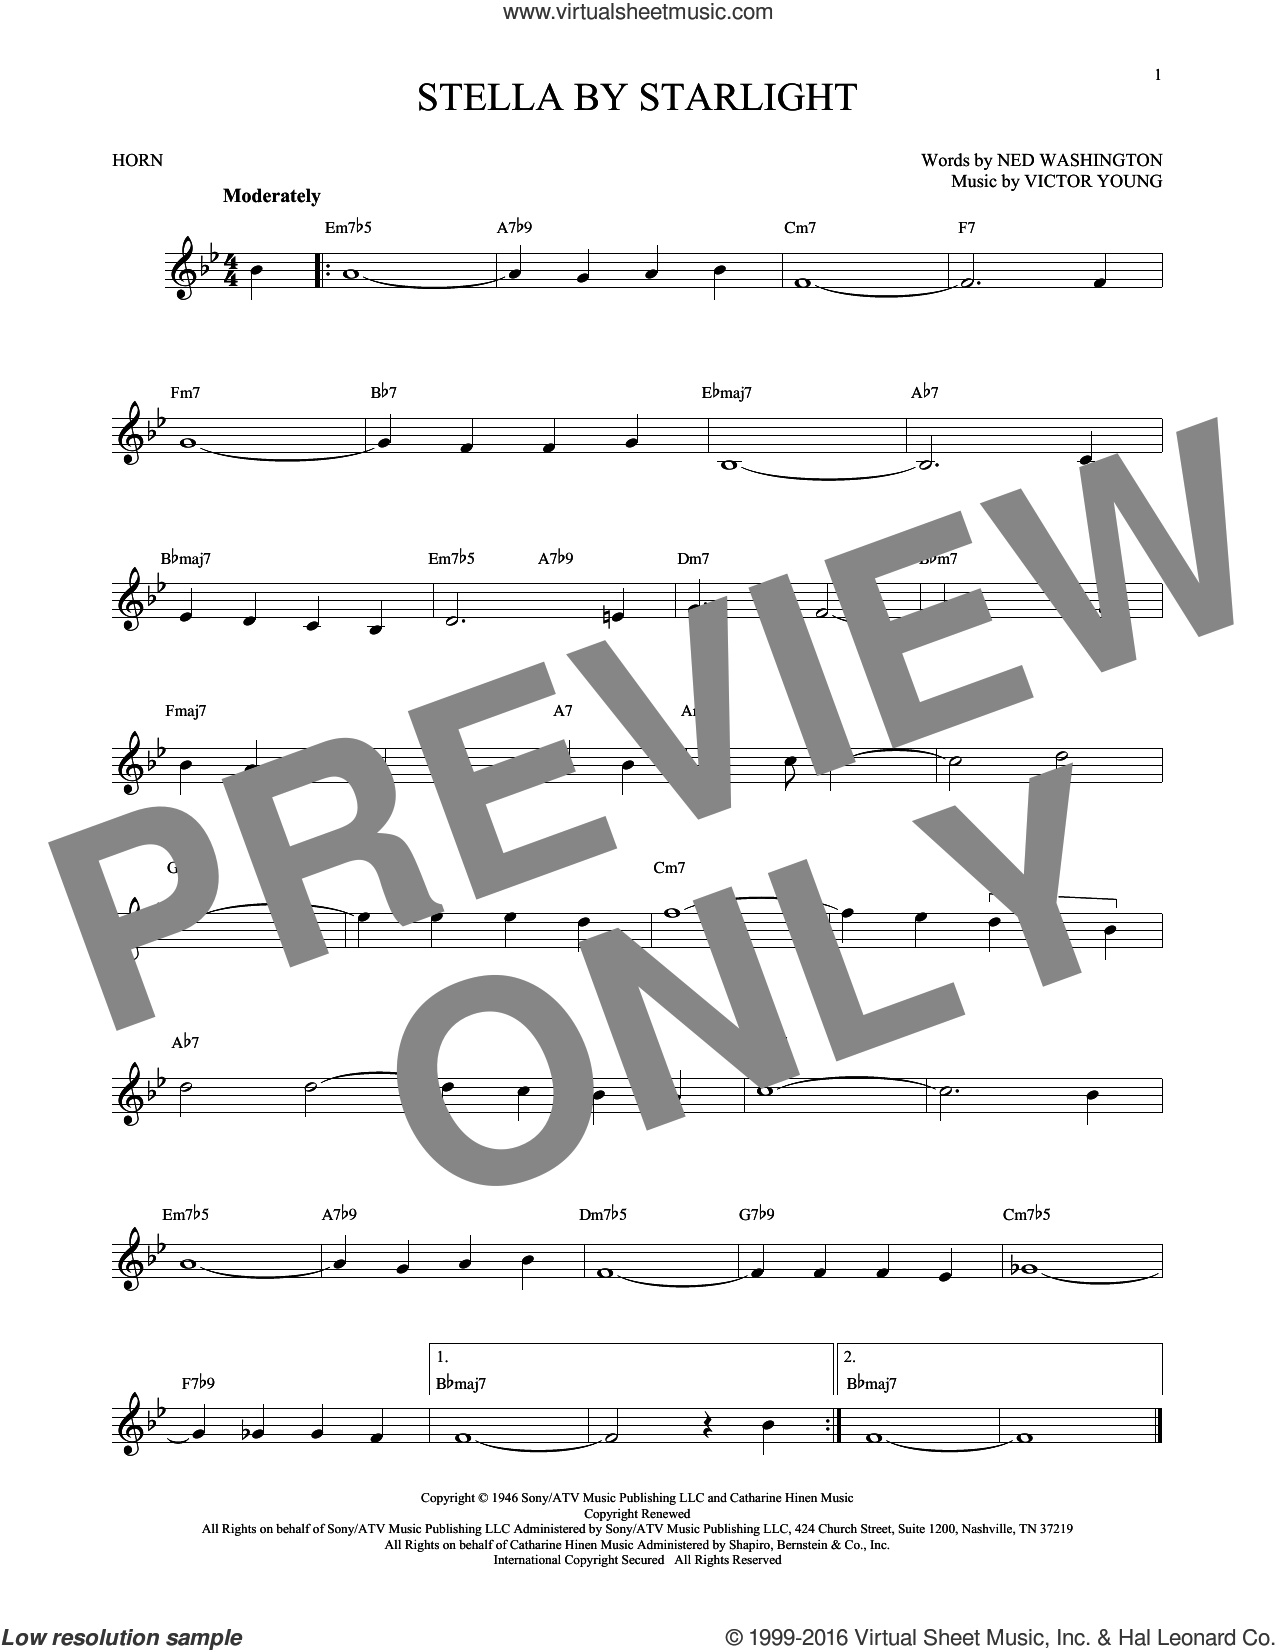 Stella By Starlight sheet music for horn solo by Ned Washington, Ray Charles and Victor Young, intermediate skill level